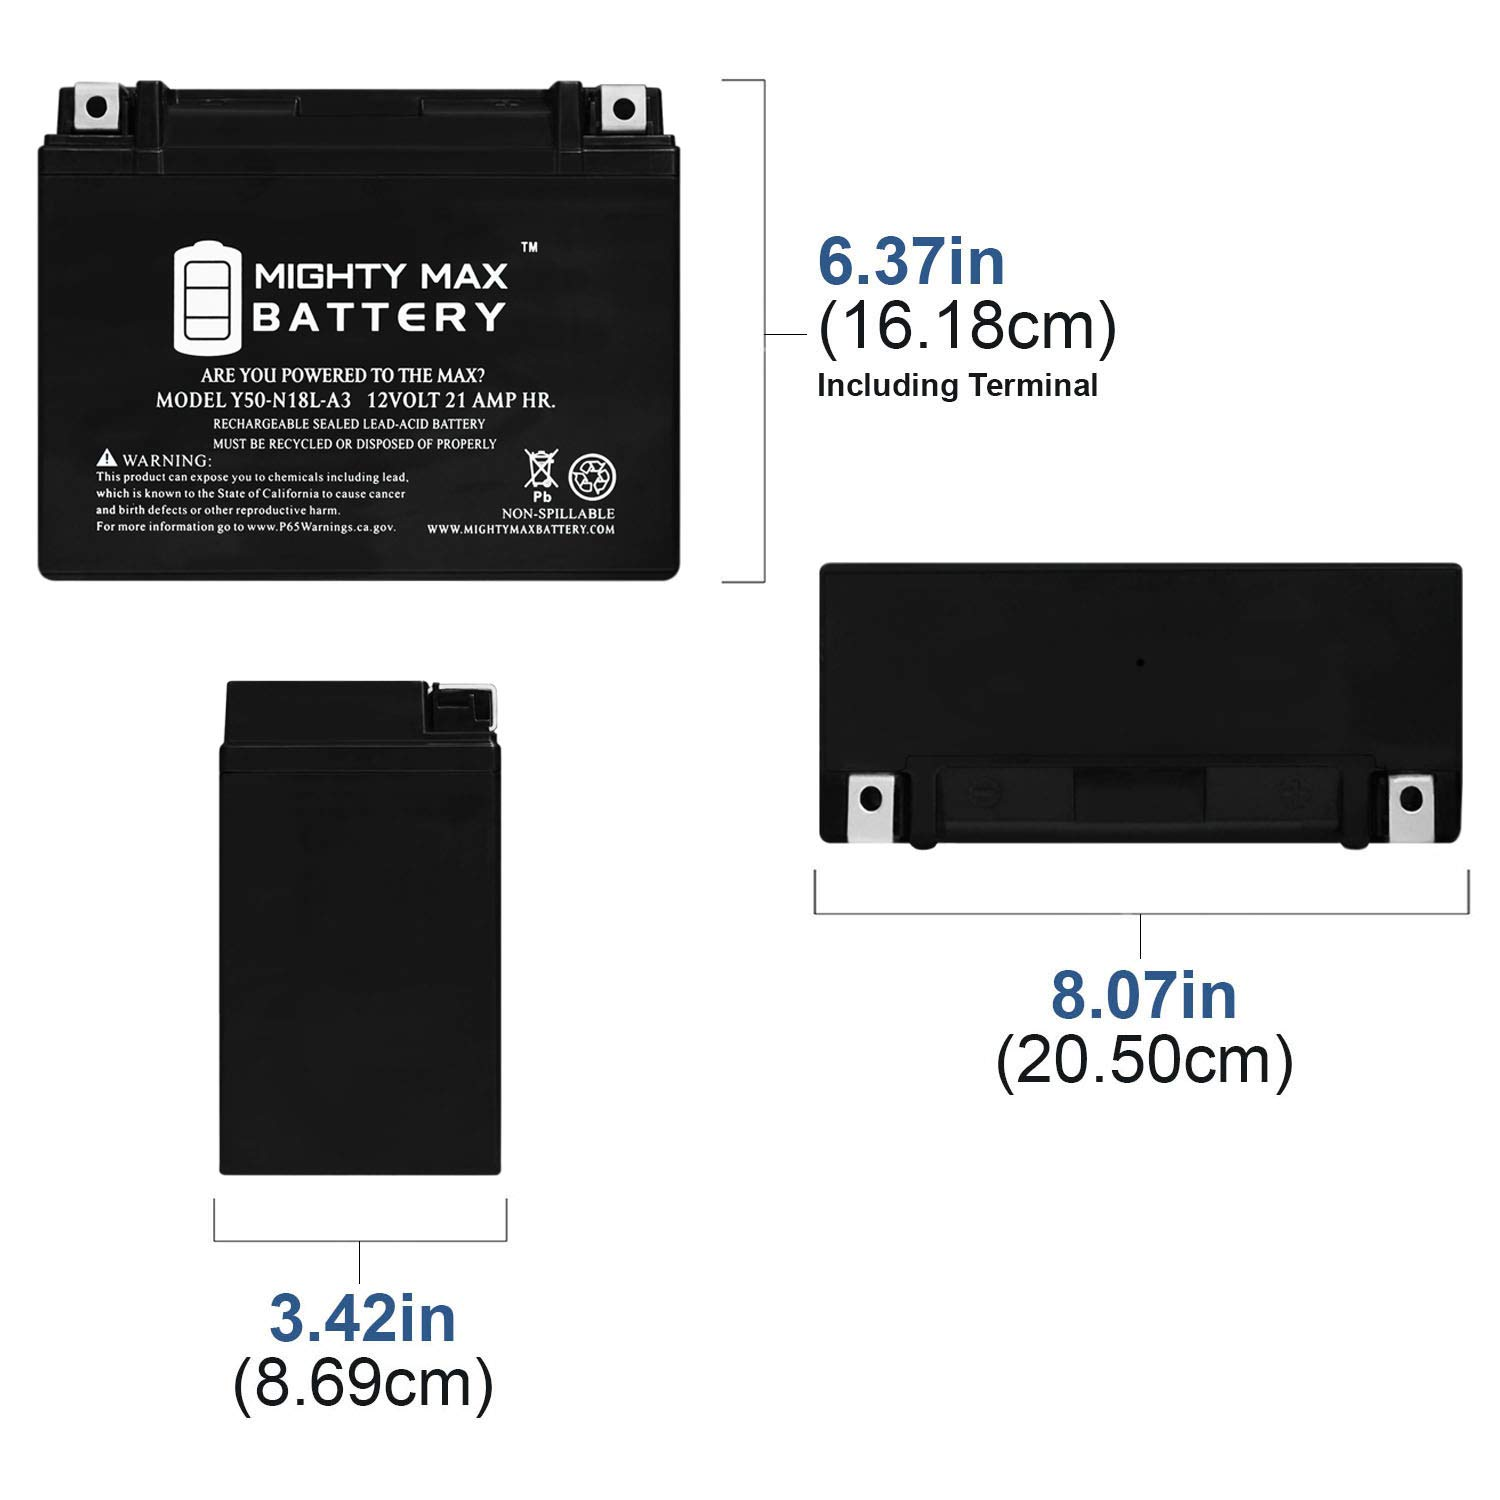 Y50-N18L-A3 - 12V 21AH 350 CCA - SLA Power Sport Battery - Mighty Max Battery Brand Product, Model: 3498186